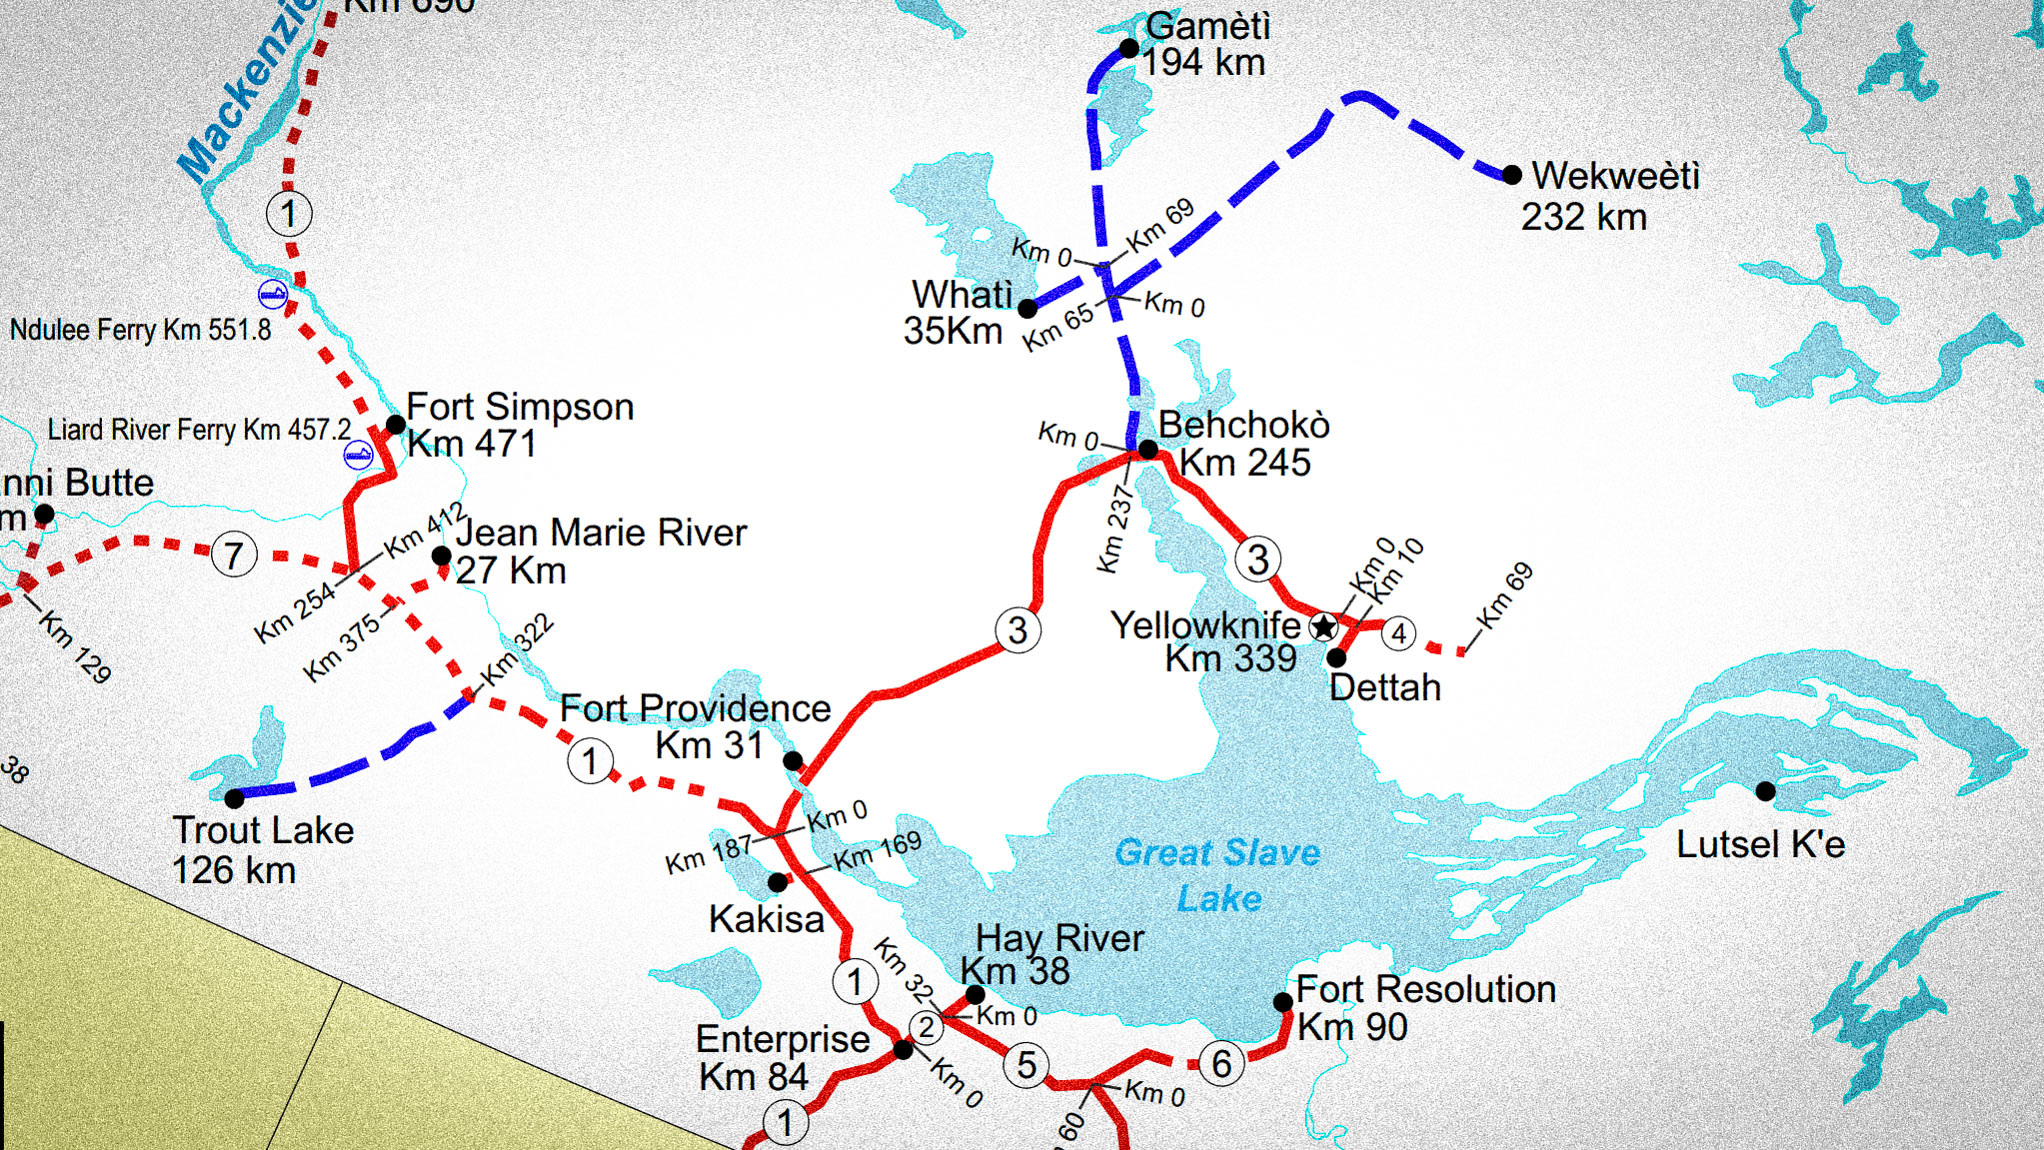 A graphic showing highways and kilometre markers of the NWT